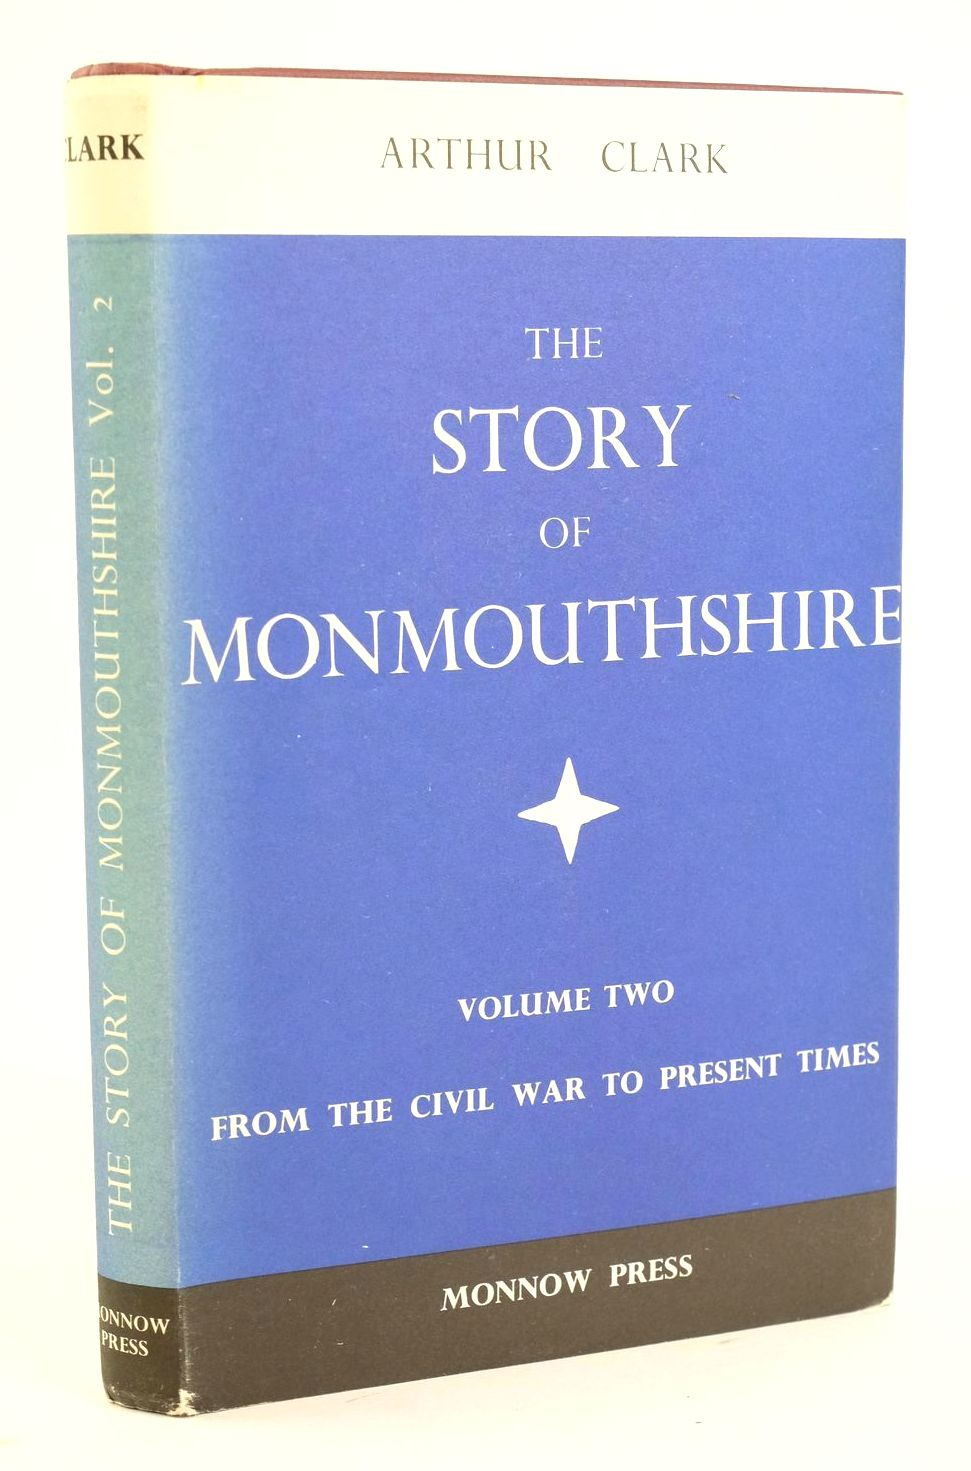 Photo of THE STORY OF MONMOUTHSHIRE VOLUME TWO written by Clark, Arthur published by Monnow Press (STOCK CODE: 1319120)  for sale by Stella & Rose's Books